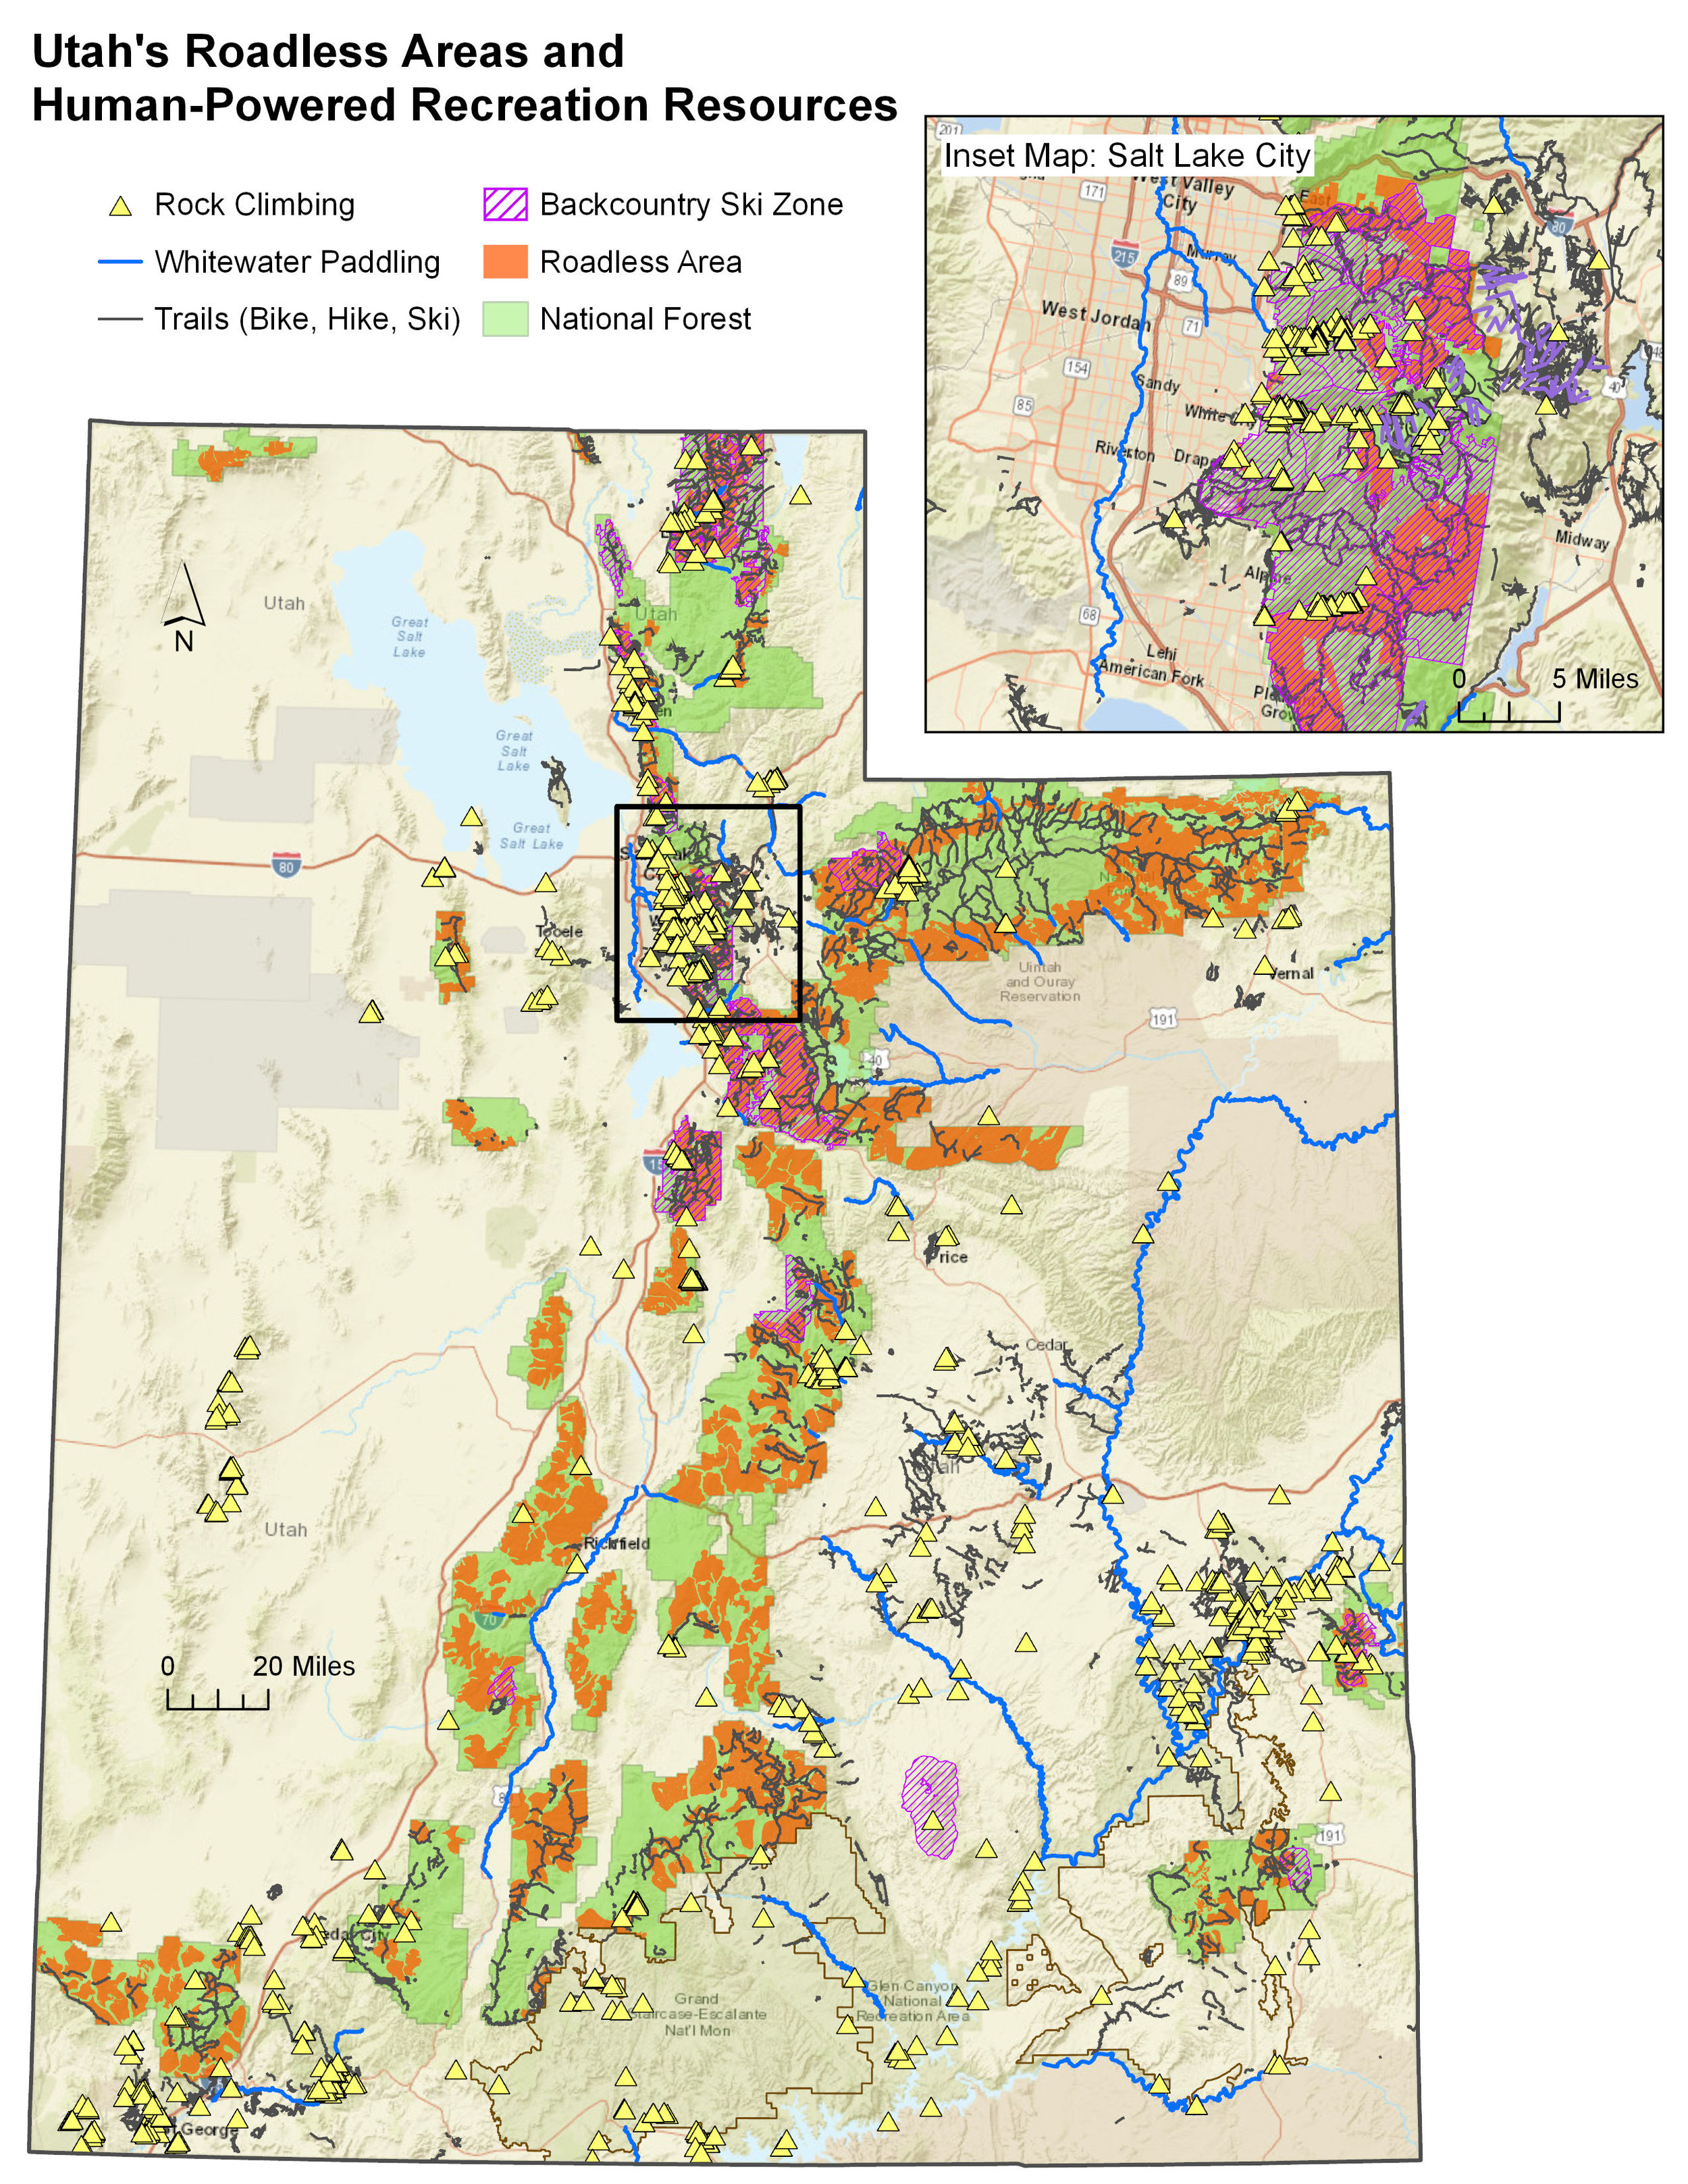 Utah's Roadless Areas and Rec Resources